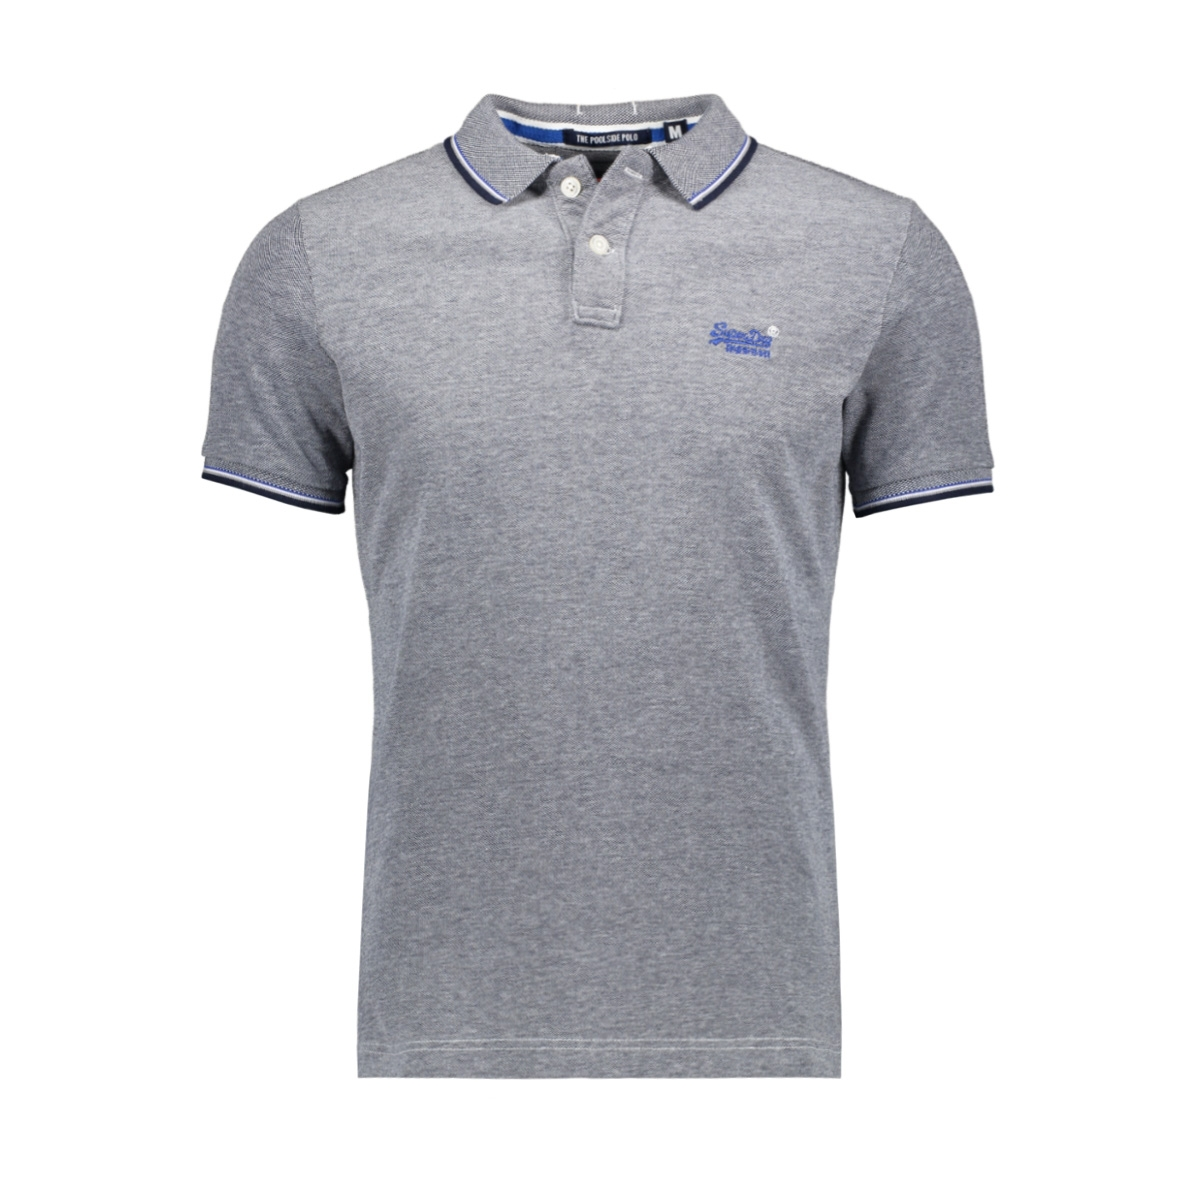 clasic poolsde s s pique polo m11000oq superdry polo navy/white